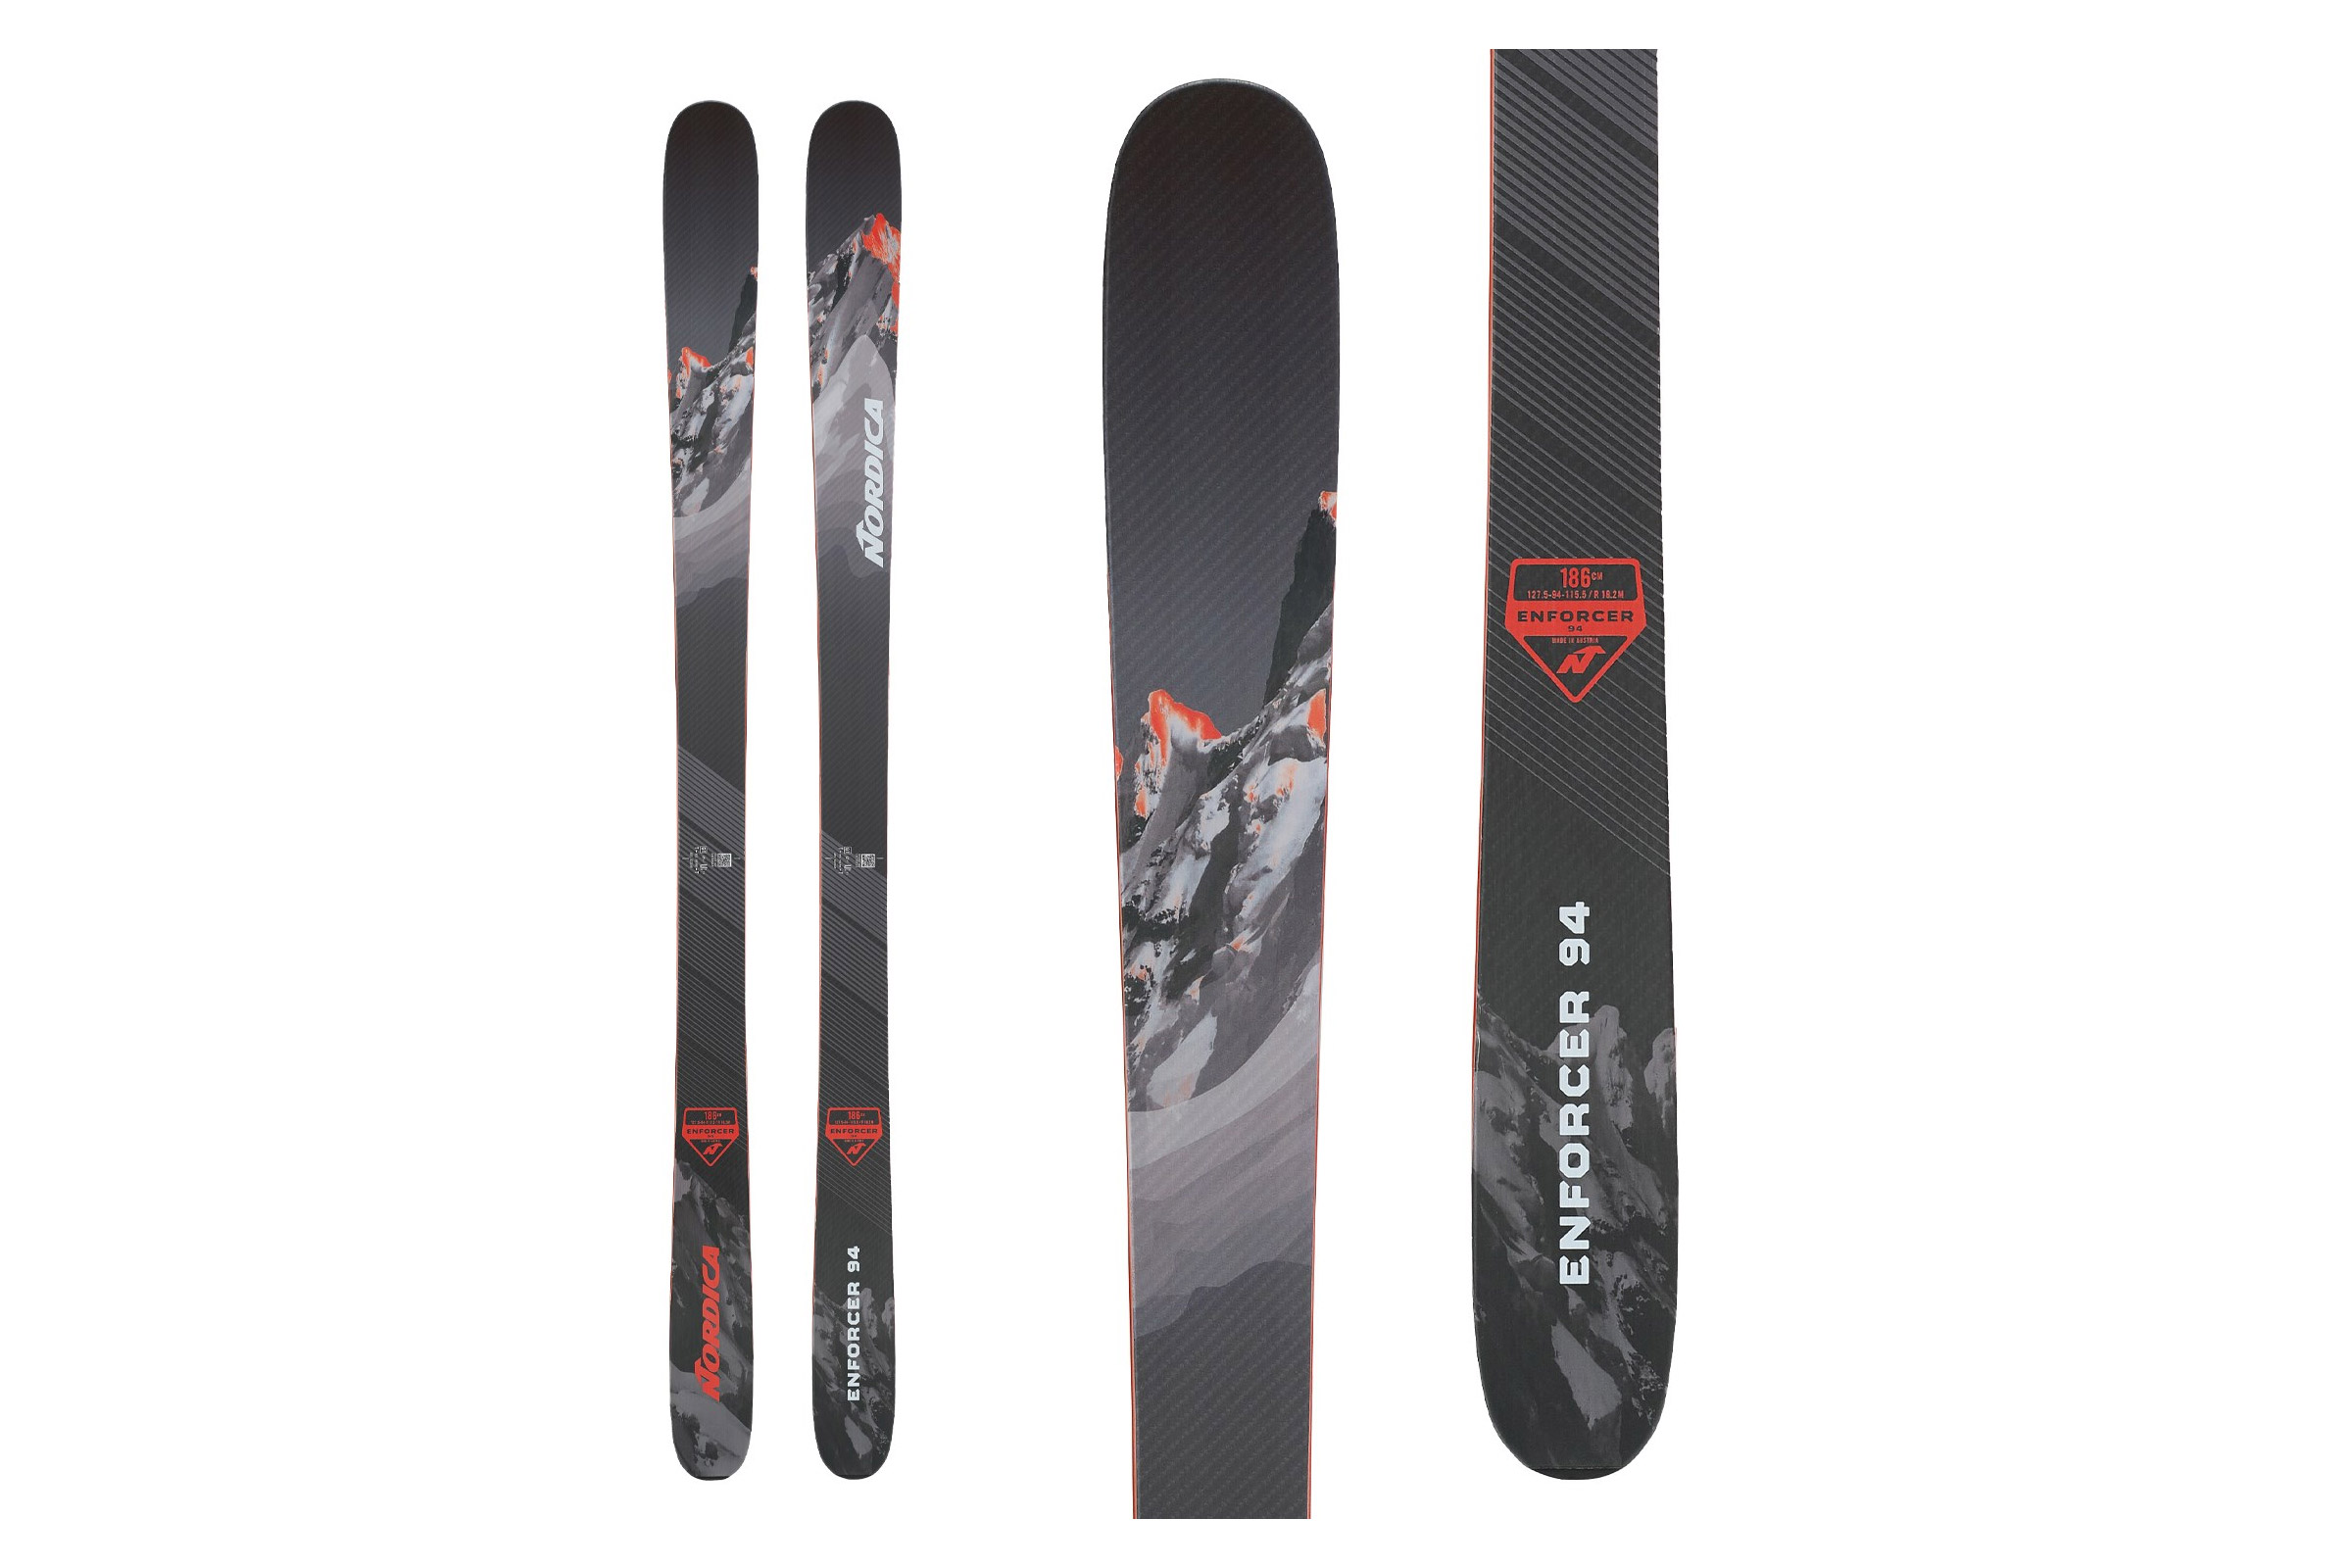 nordica enforcer 94 - all mountain skis